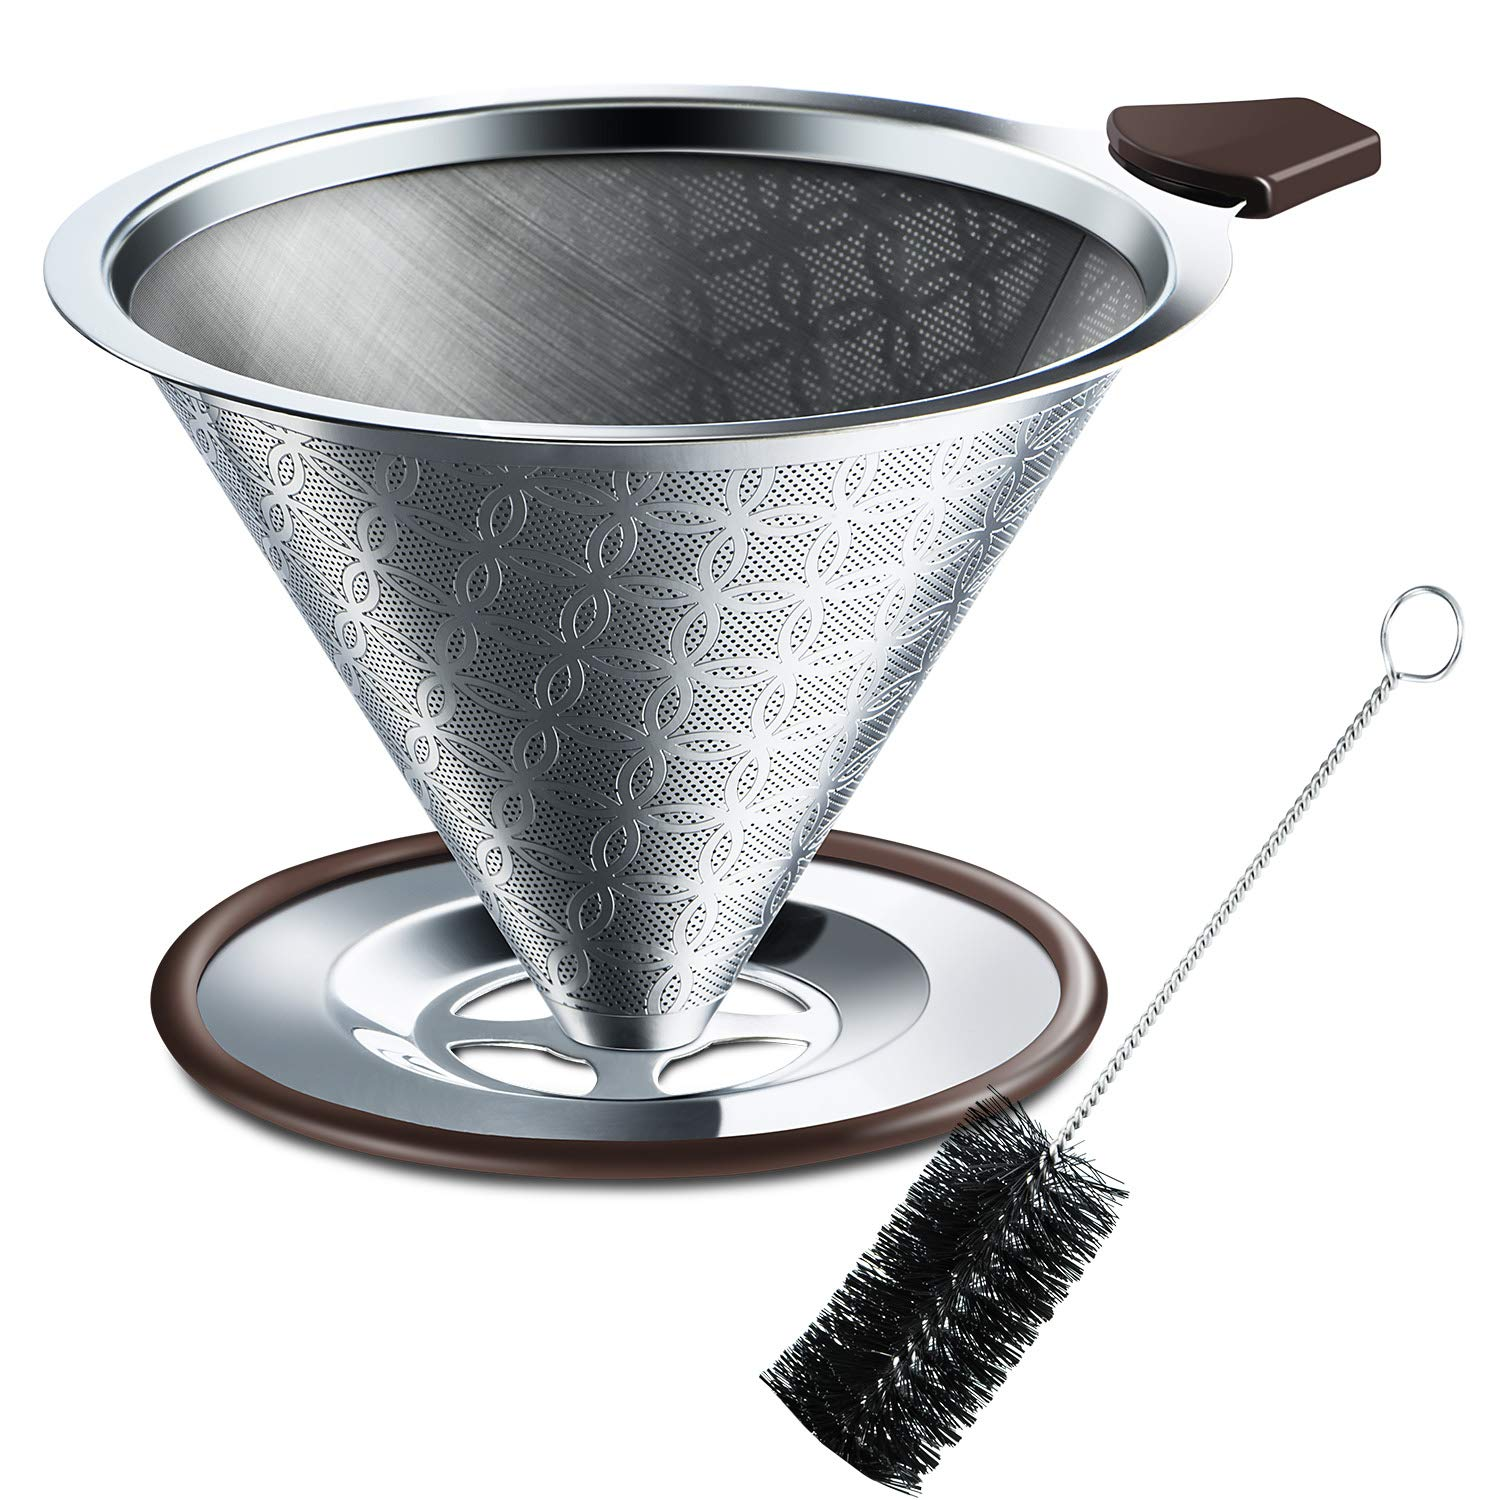 SRIWATANA Stainless Steel Coffee Dripper, Pour Over Coffee Filter with Non-Slip Silicone Handle and Bonus Brush, Floral Design